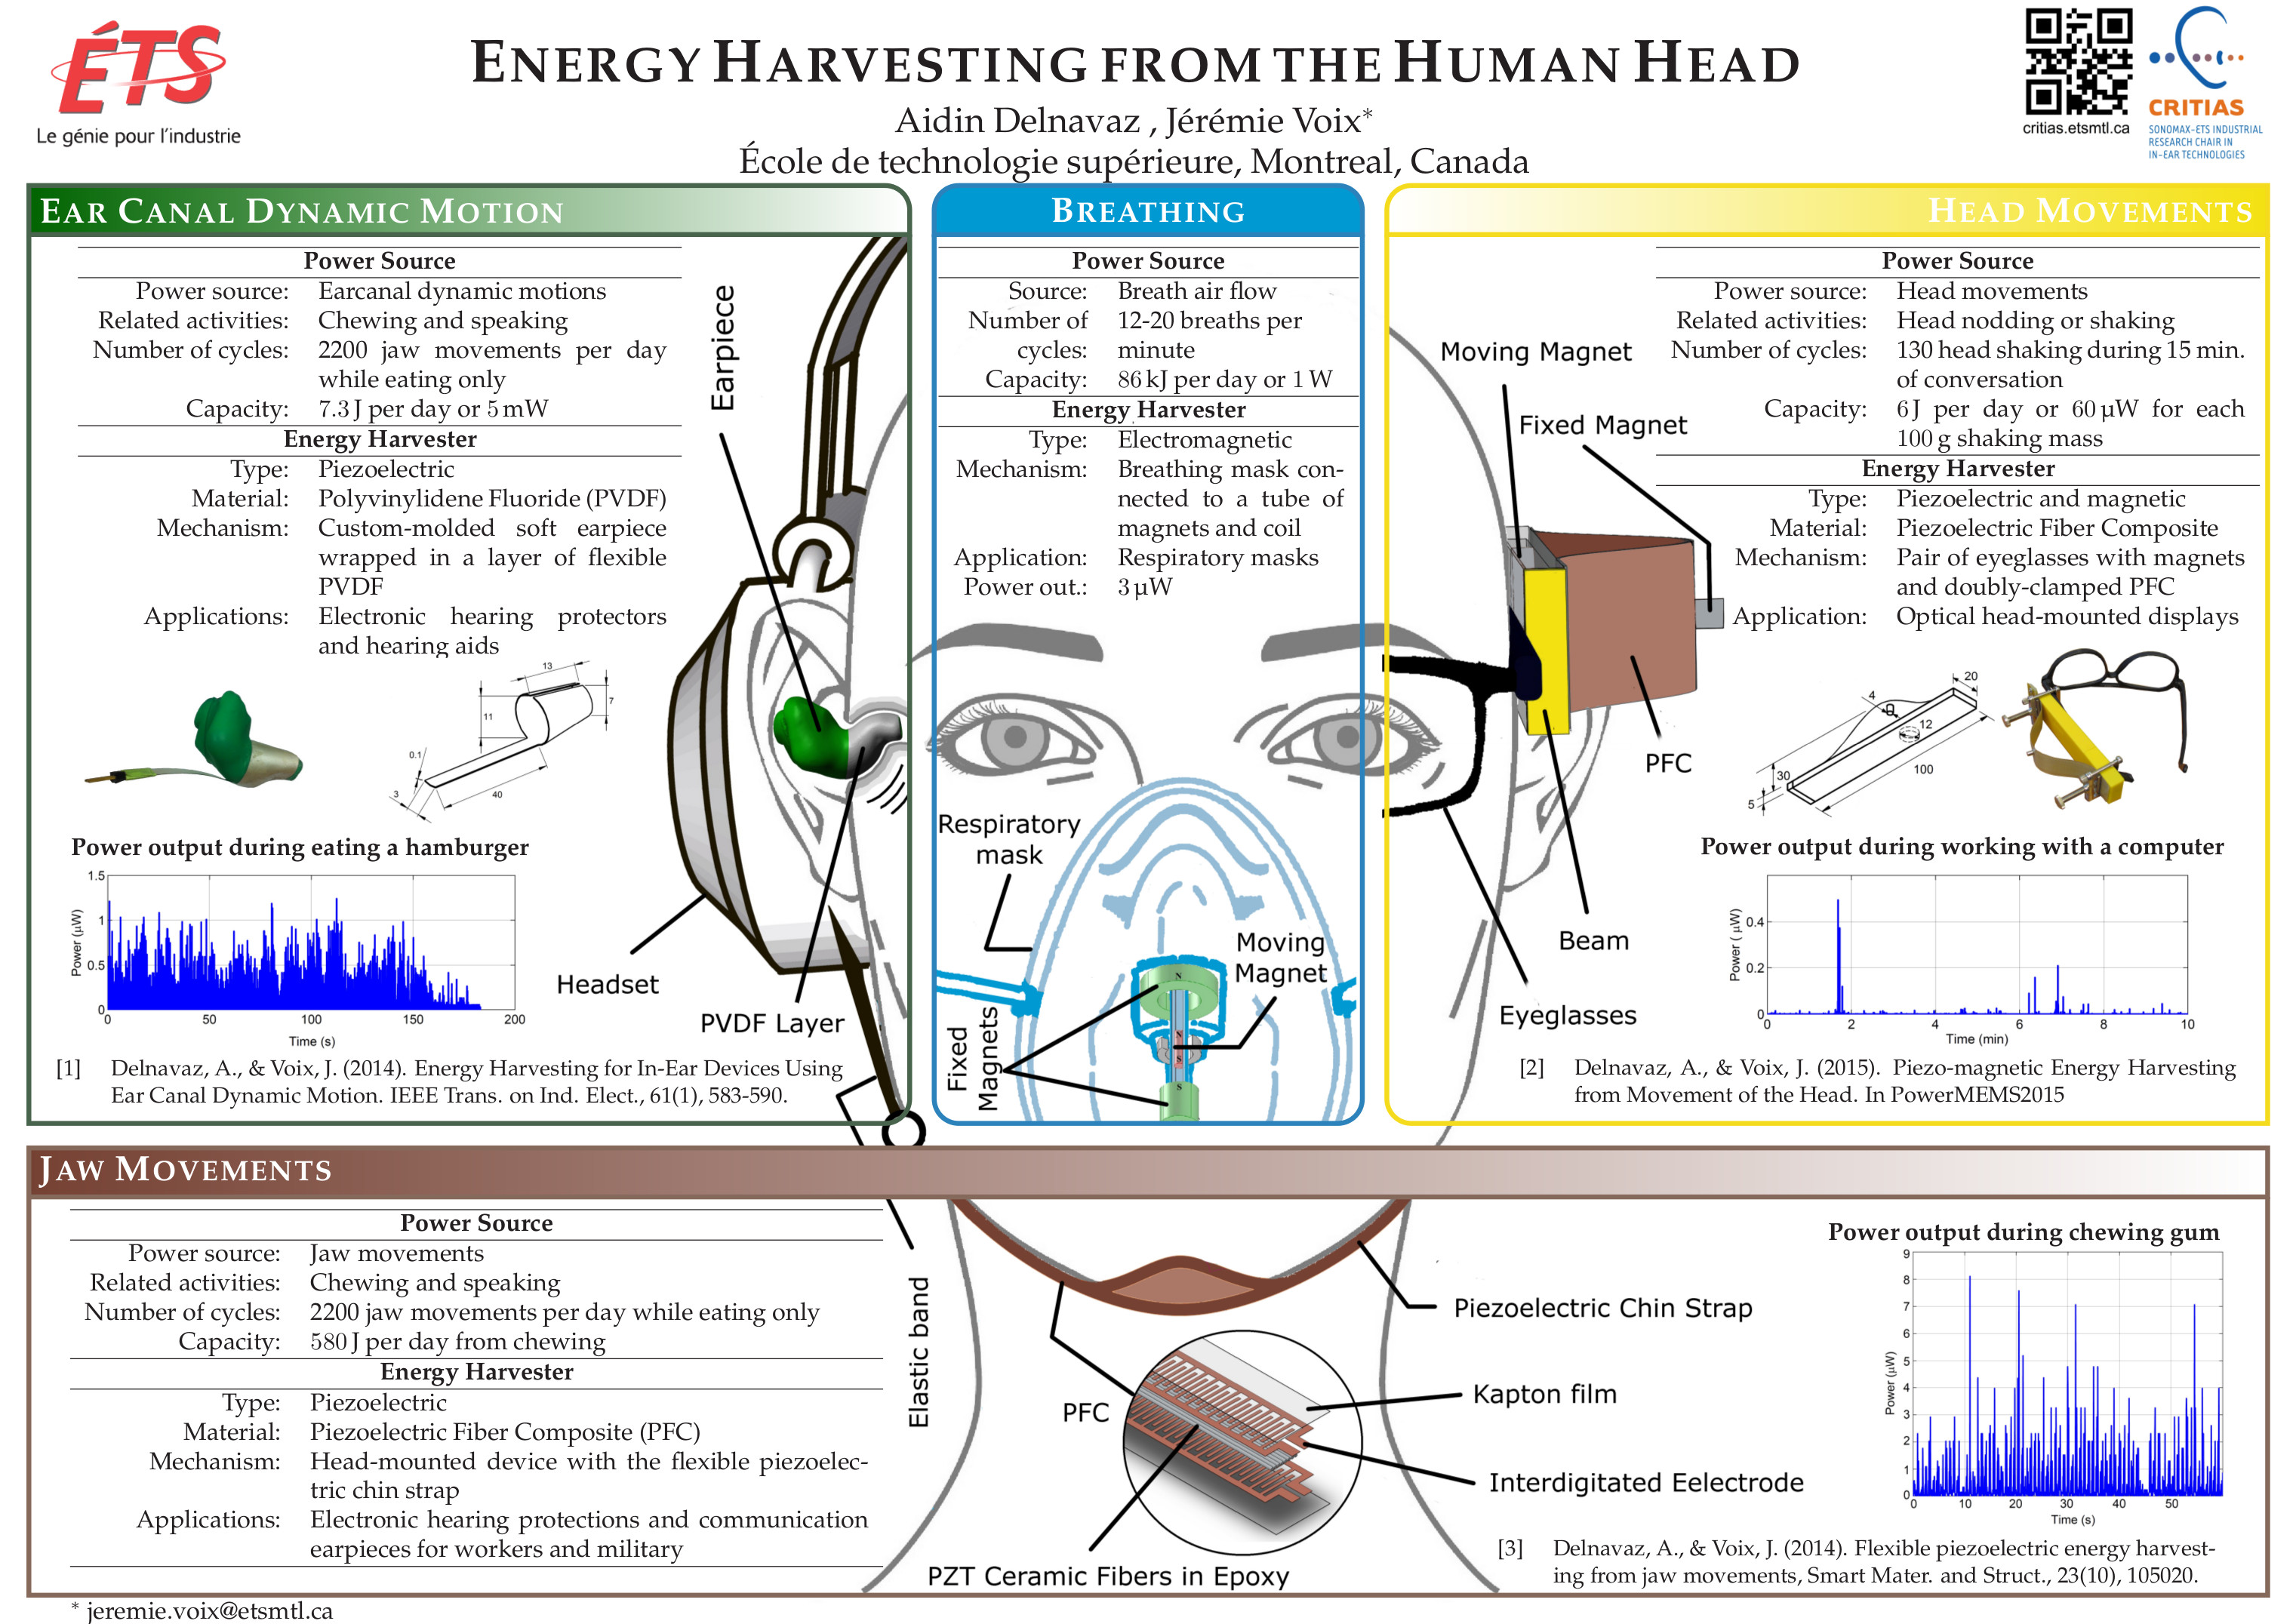 Aidin Delnavaz and Jérémie Voix - 2015 - Energy Harvesting from the Human Head